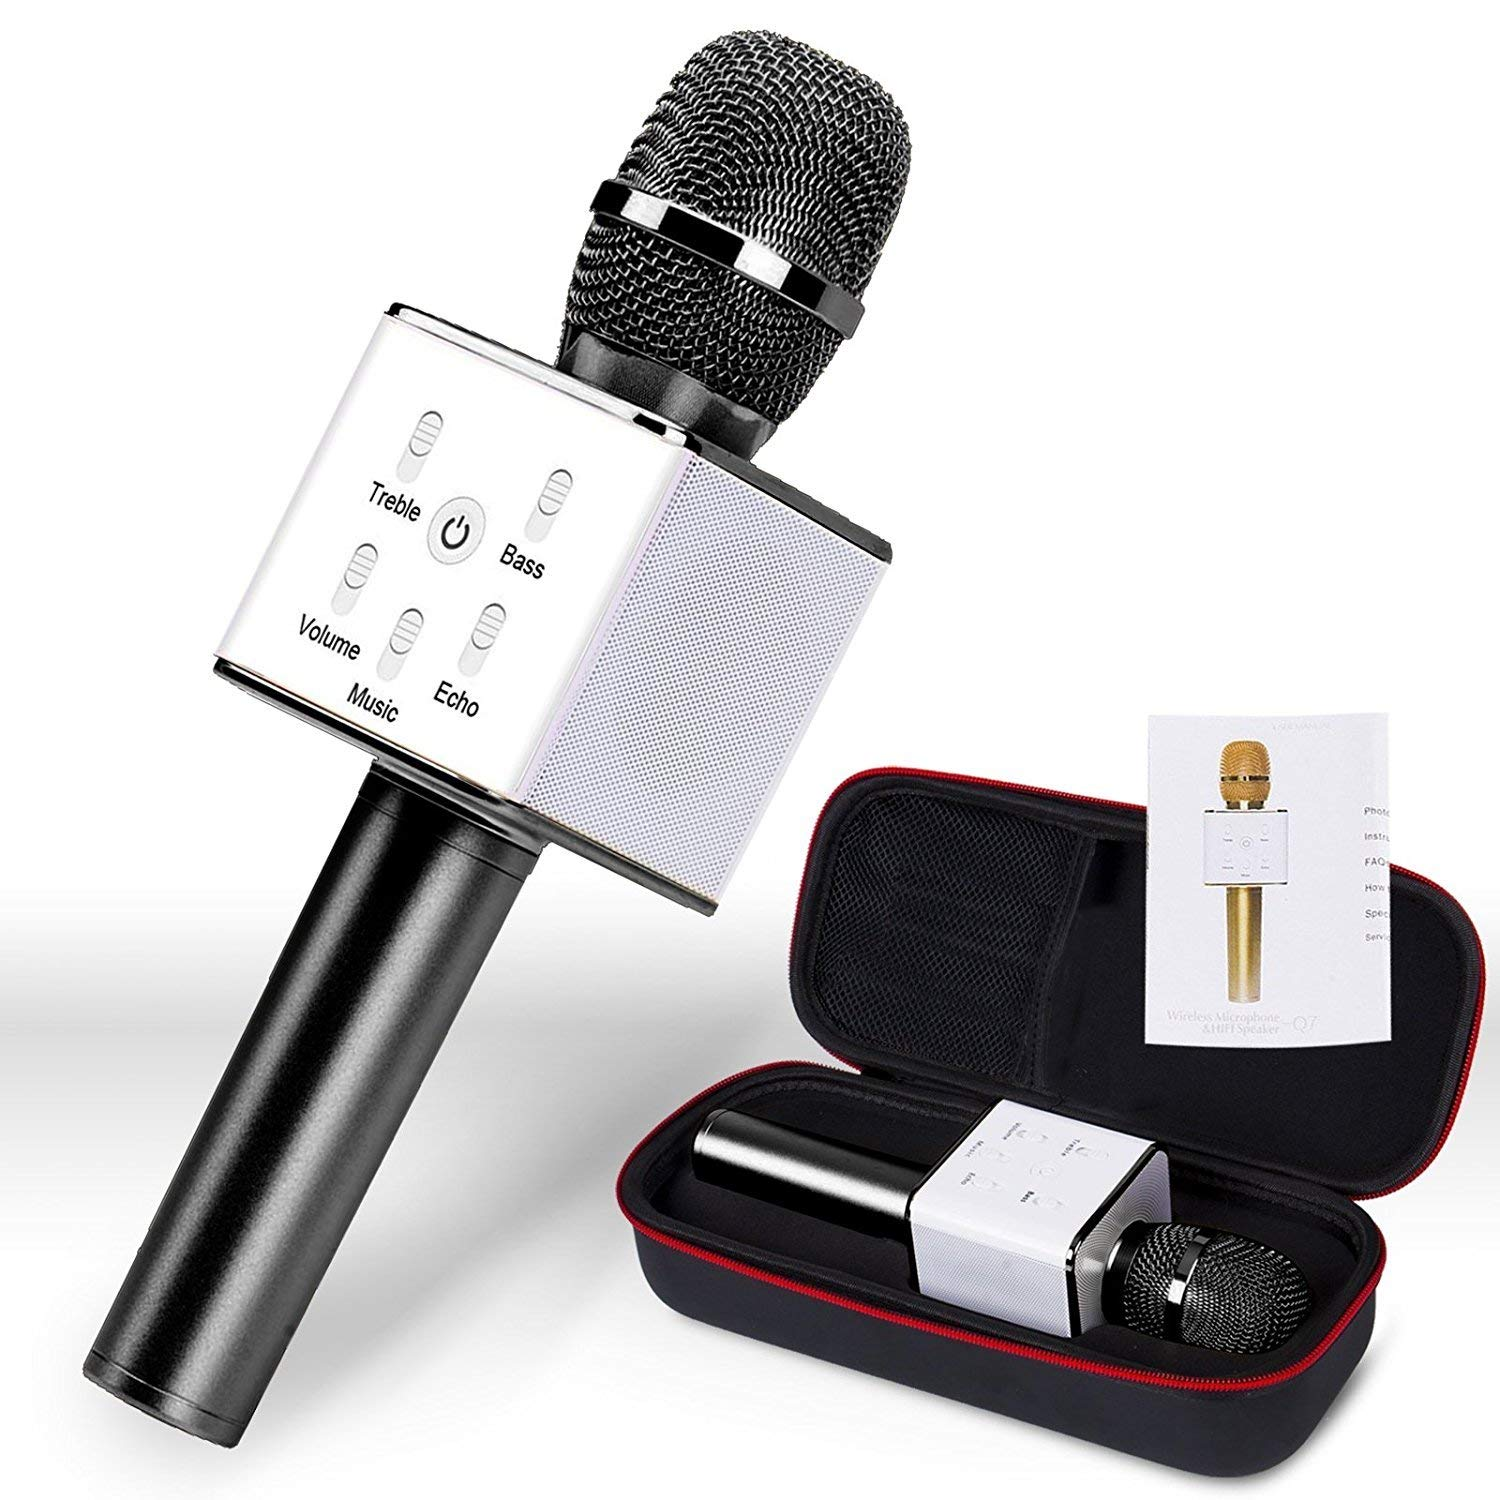 NEW 2018 Portable Q7 Karaoke Microphone - Wireless Bluetooth Speaker Mic - 3-in-1 Handheld KTV Player Machine for Dynamic Singing with Music - iPhone, iOS, Android, Tablet Compatible (Piano Black)